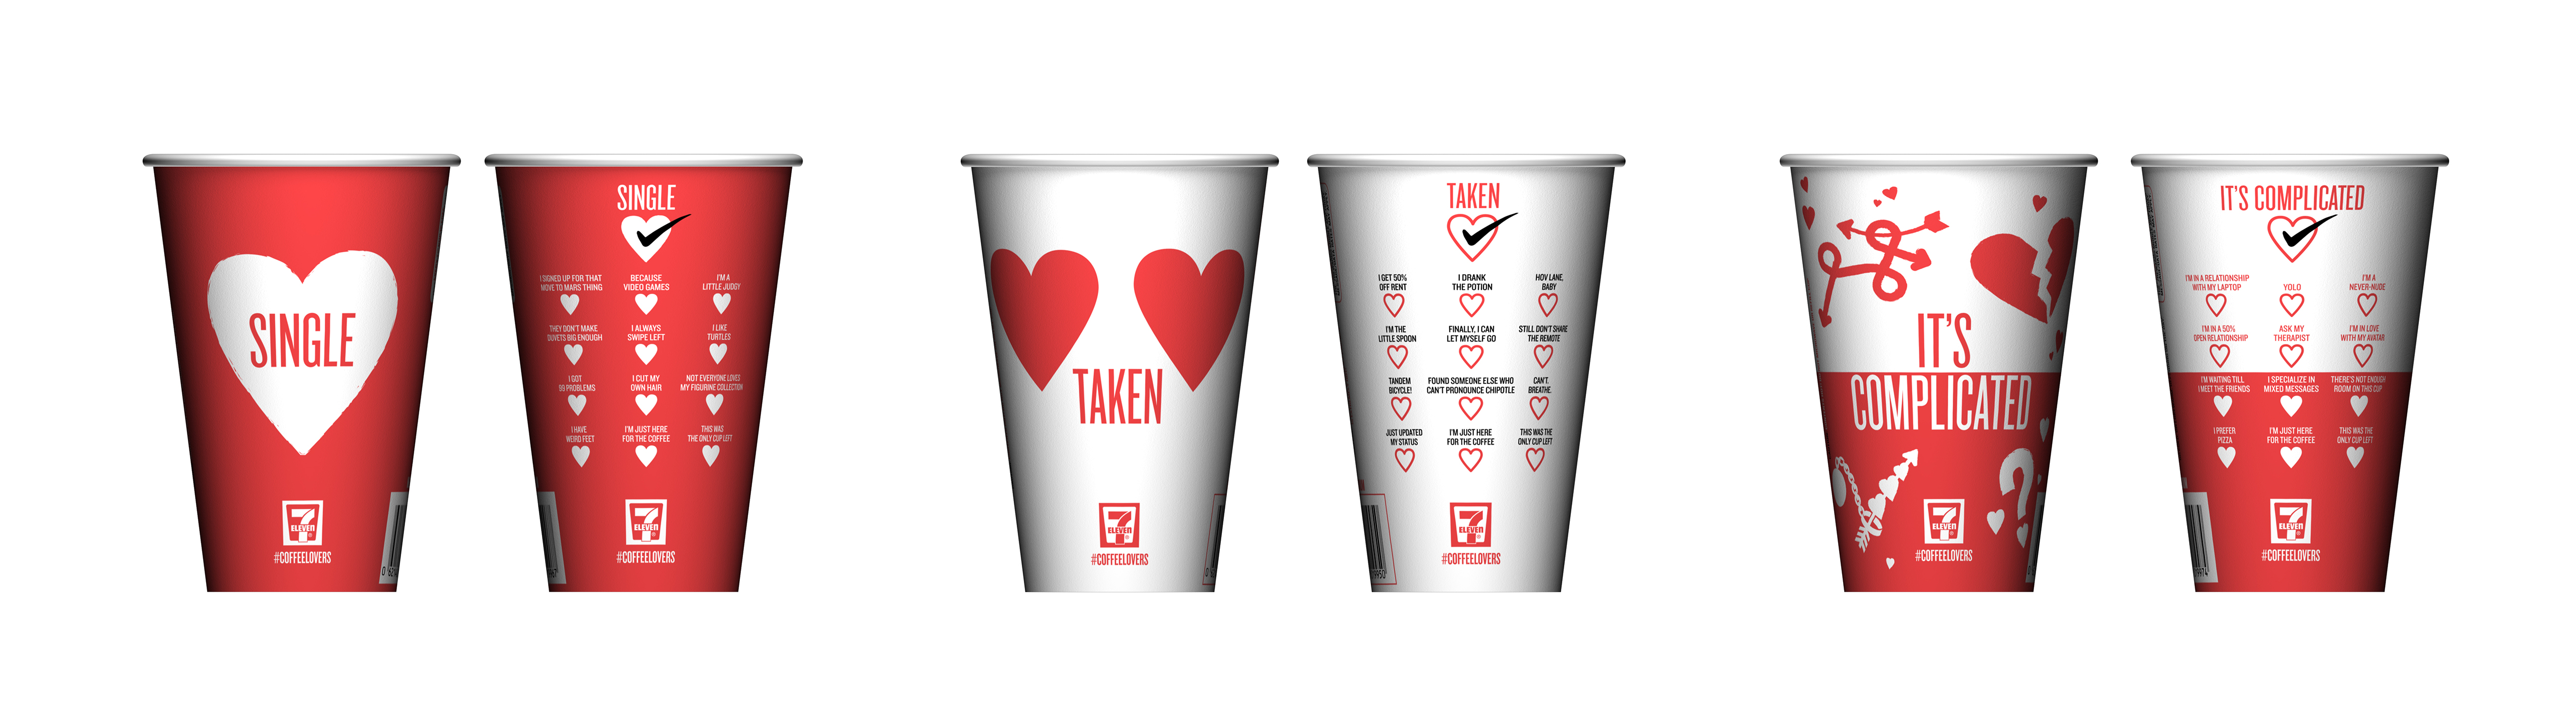 Image Available:  Http://www.marketwire.com/library/MwGo/2016/2/1/11G081099/Images/3_VALENTINE_CUPS Eec34e6a35cd88e1b78ac99c35cc27b4